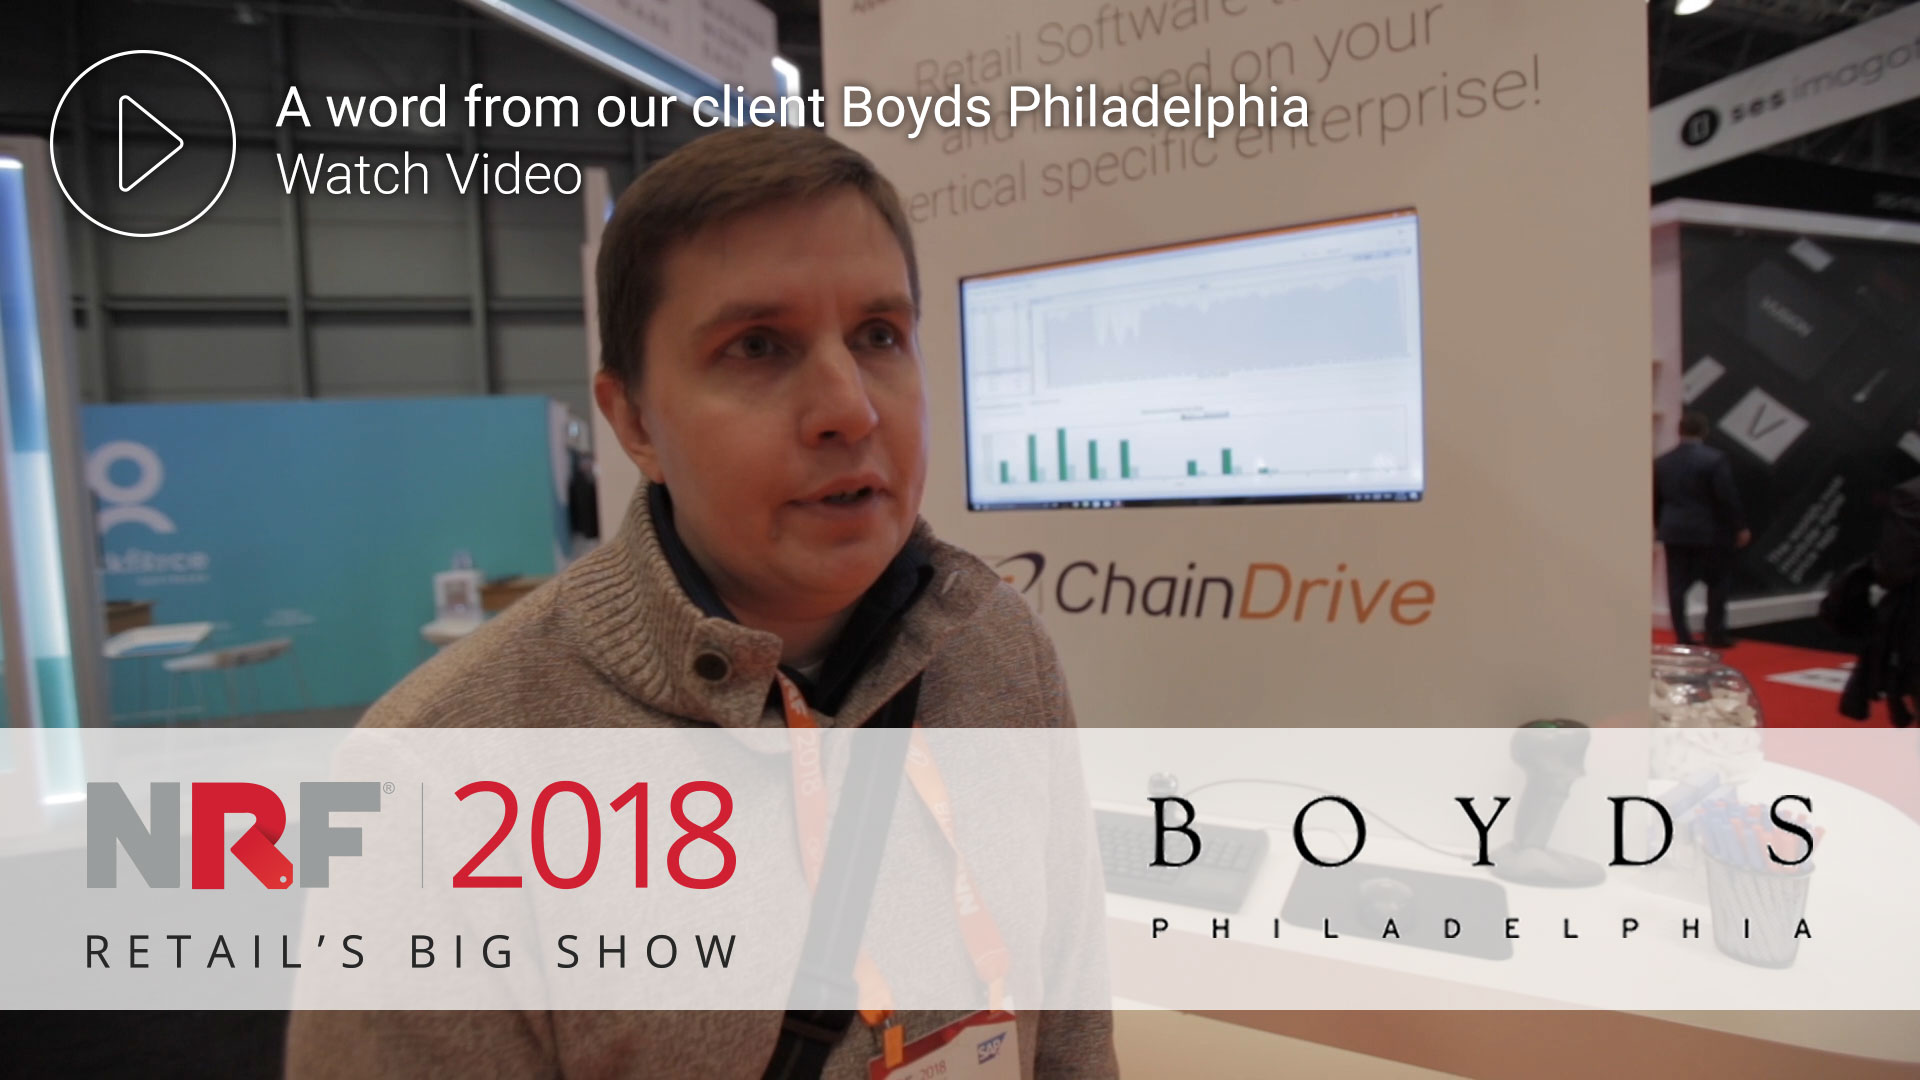 Retail Recources - NRF Interview Video - Boyds Philadelphia